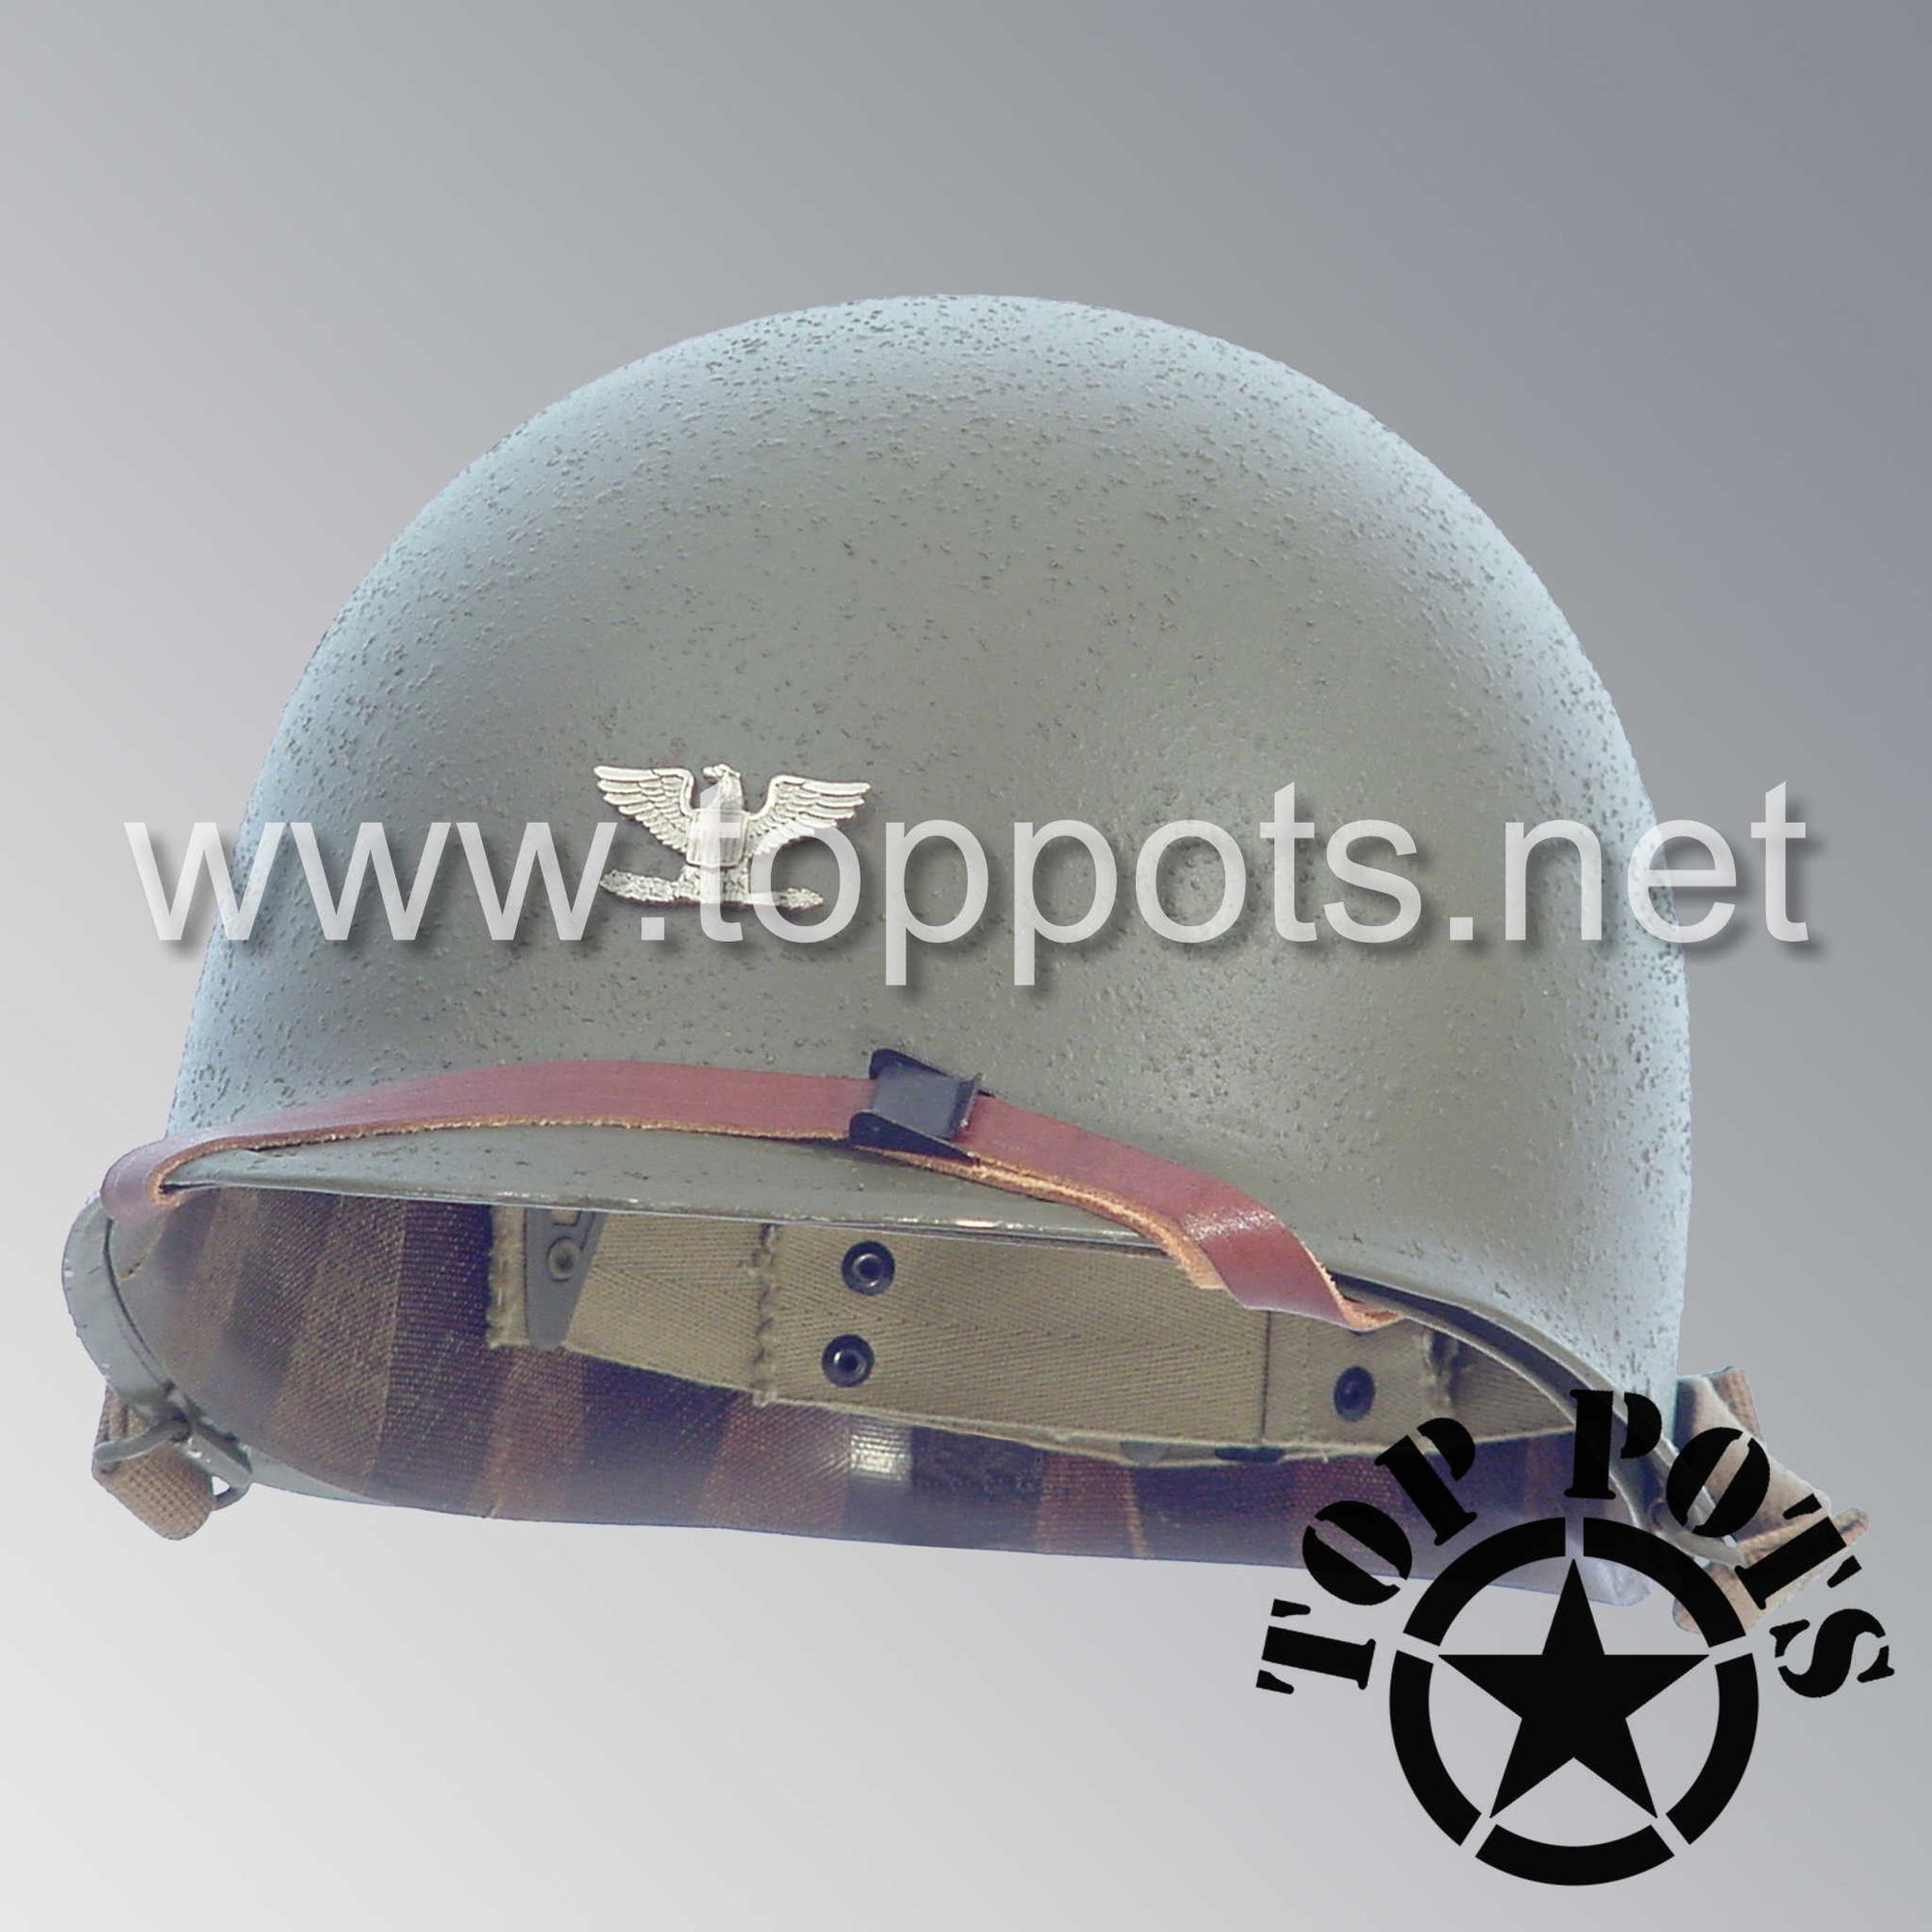 Image 1 of WWII US Army Restored Original M1 Infantry Helmet Swivel Bale Shell and Liner with Metal Colonel Officer Emblem